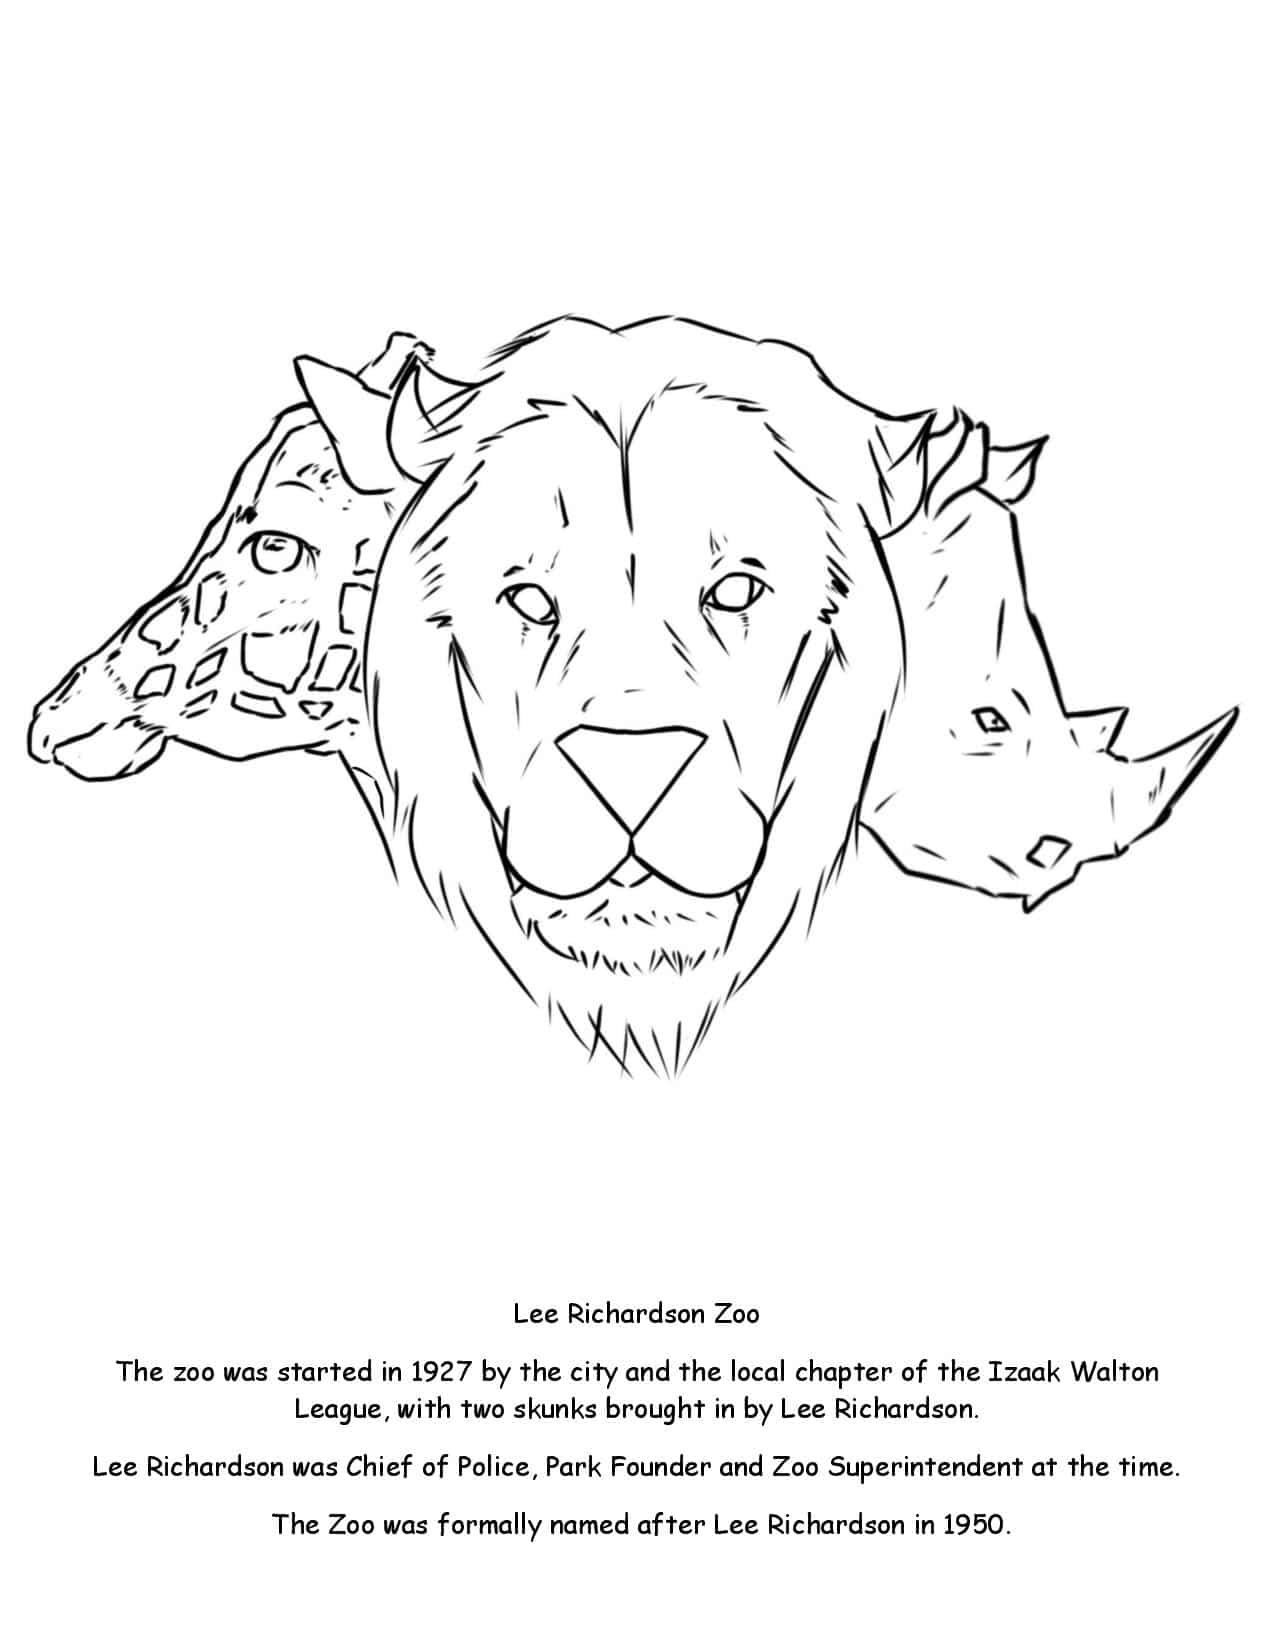 Lee Richardson Zoo Coloring Page